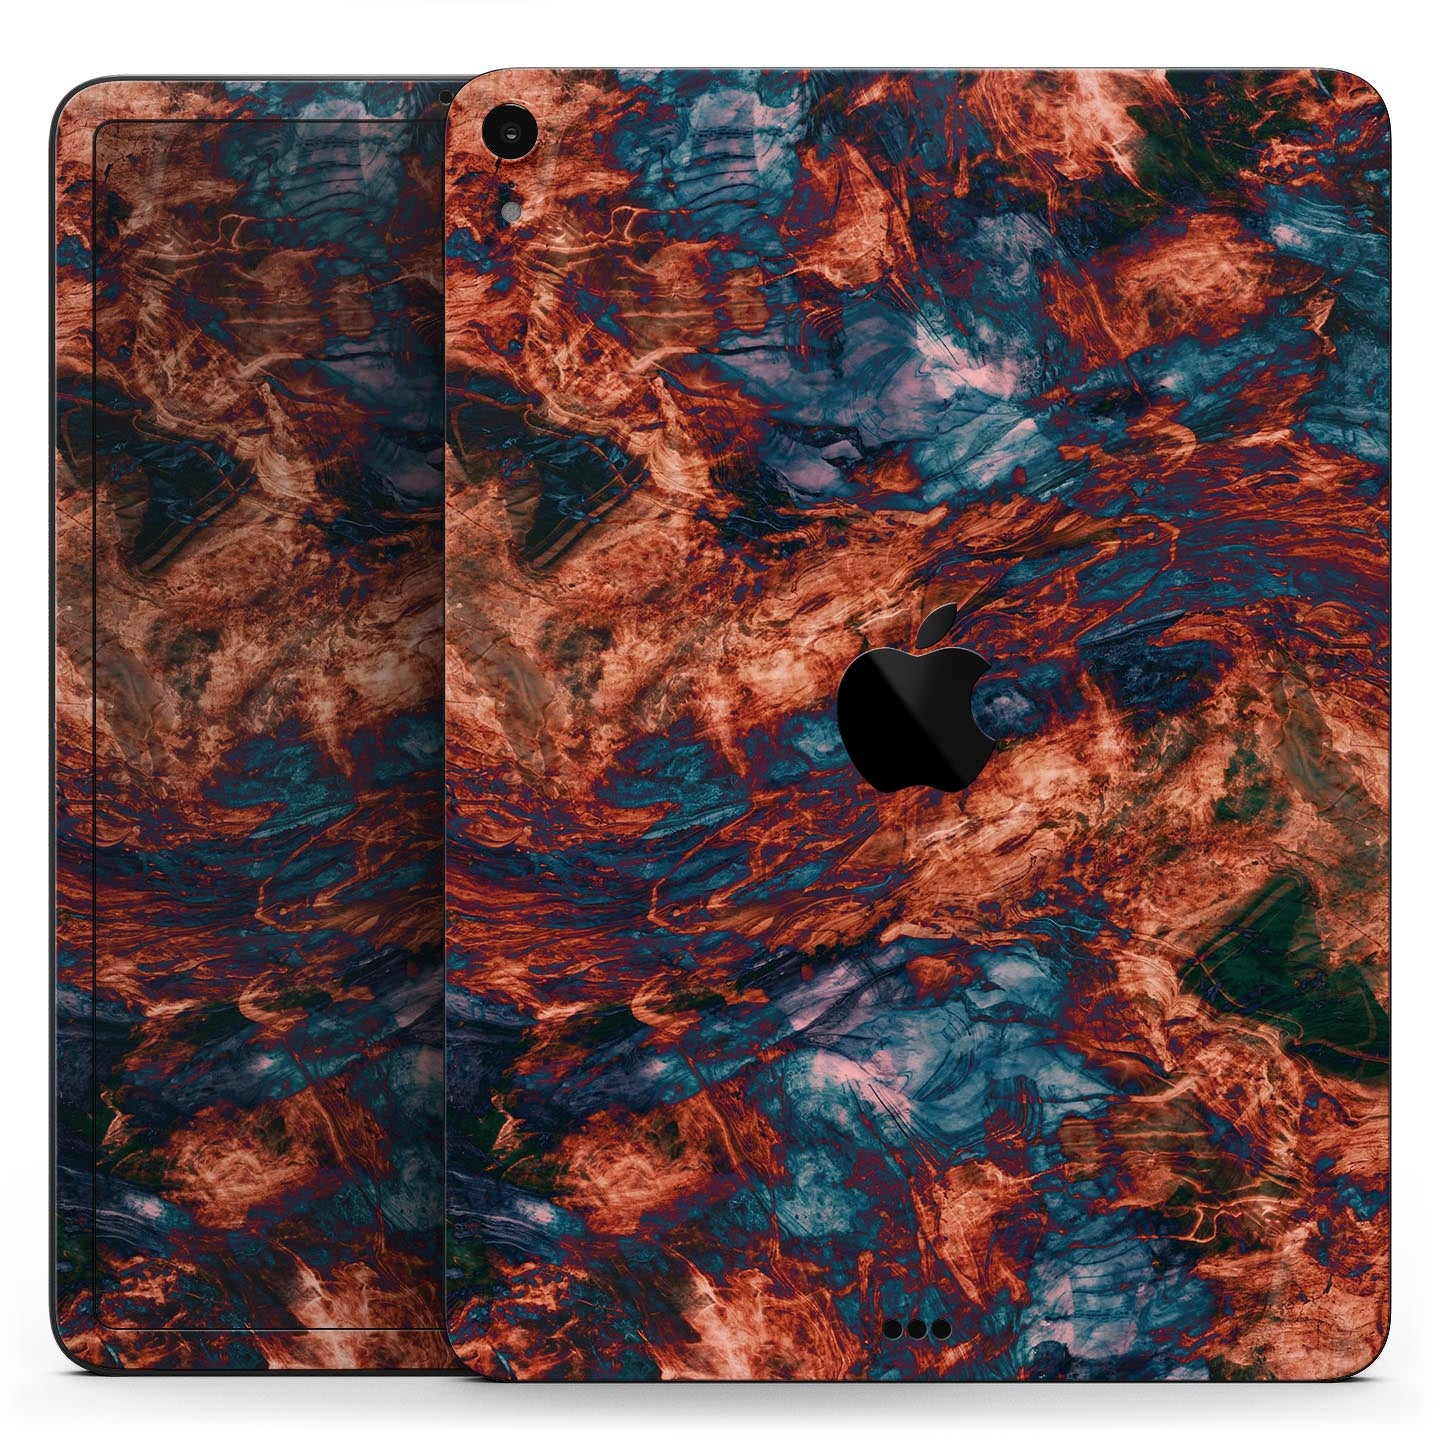 "Liquid Abstract Paint Remix V81 - Full Body Skin Decal for the Apple iPad Pro 12.9"", 11"", 10.5"", 9.7"", Air or Mini (All Models Available)"